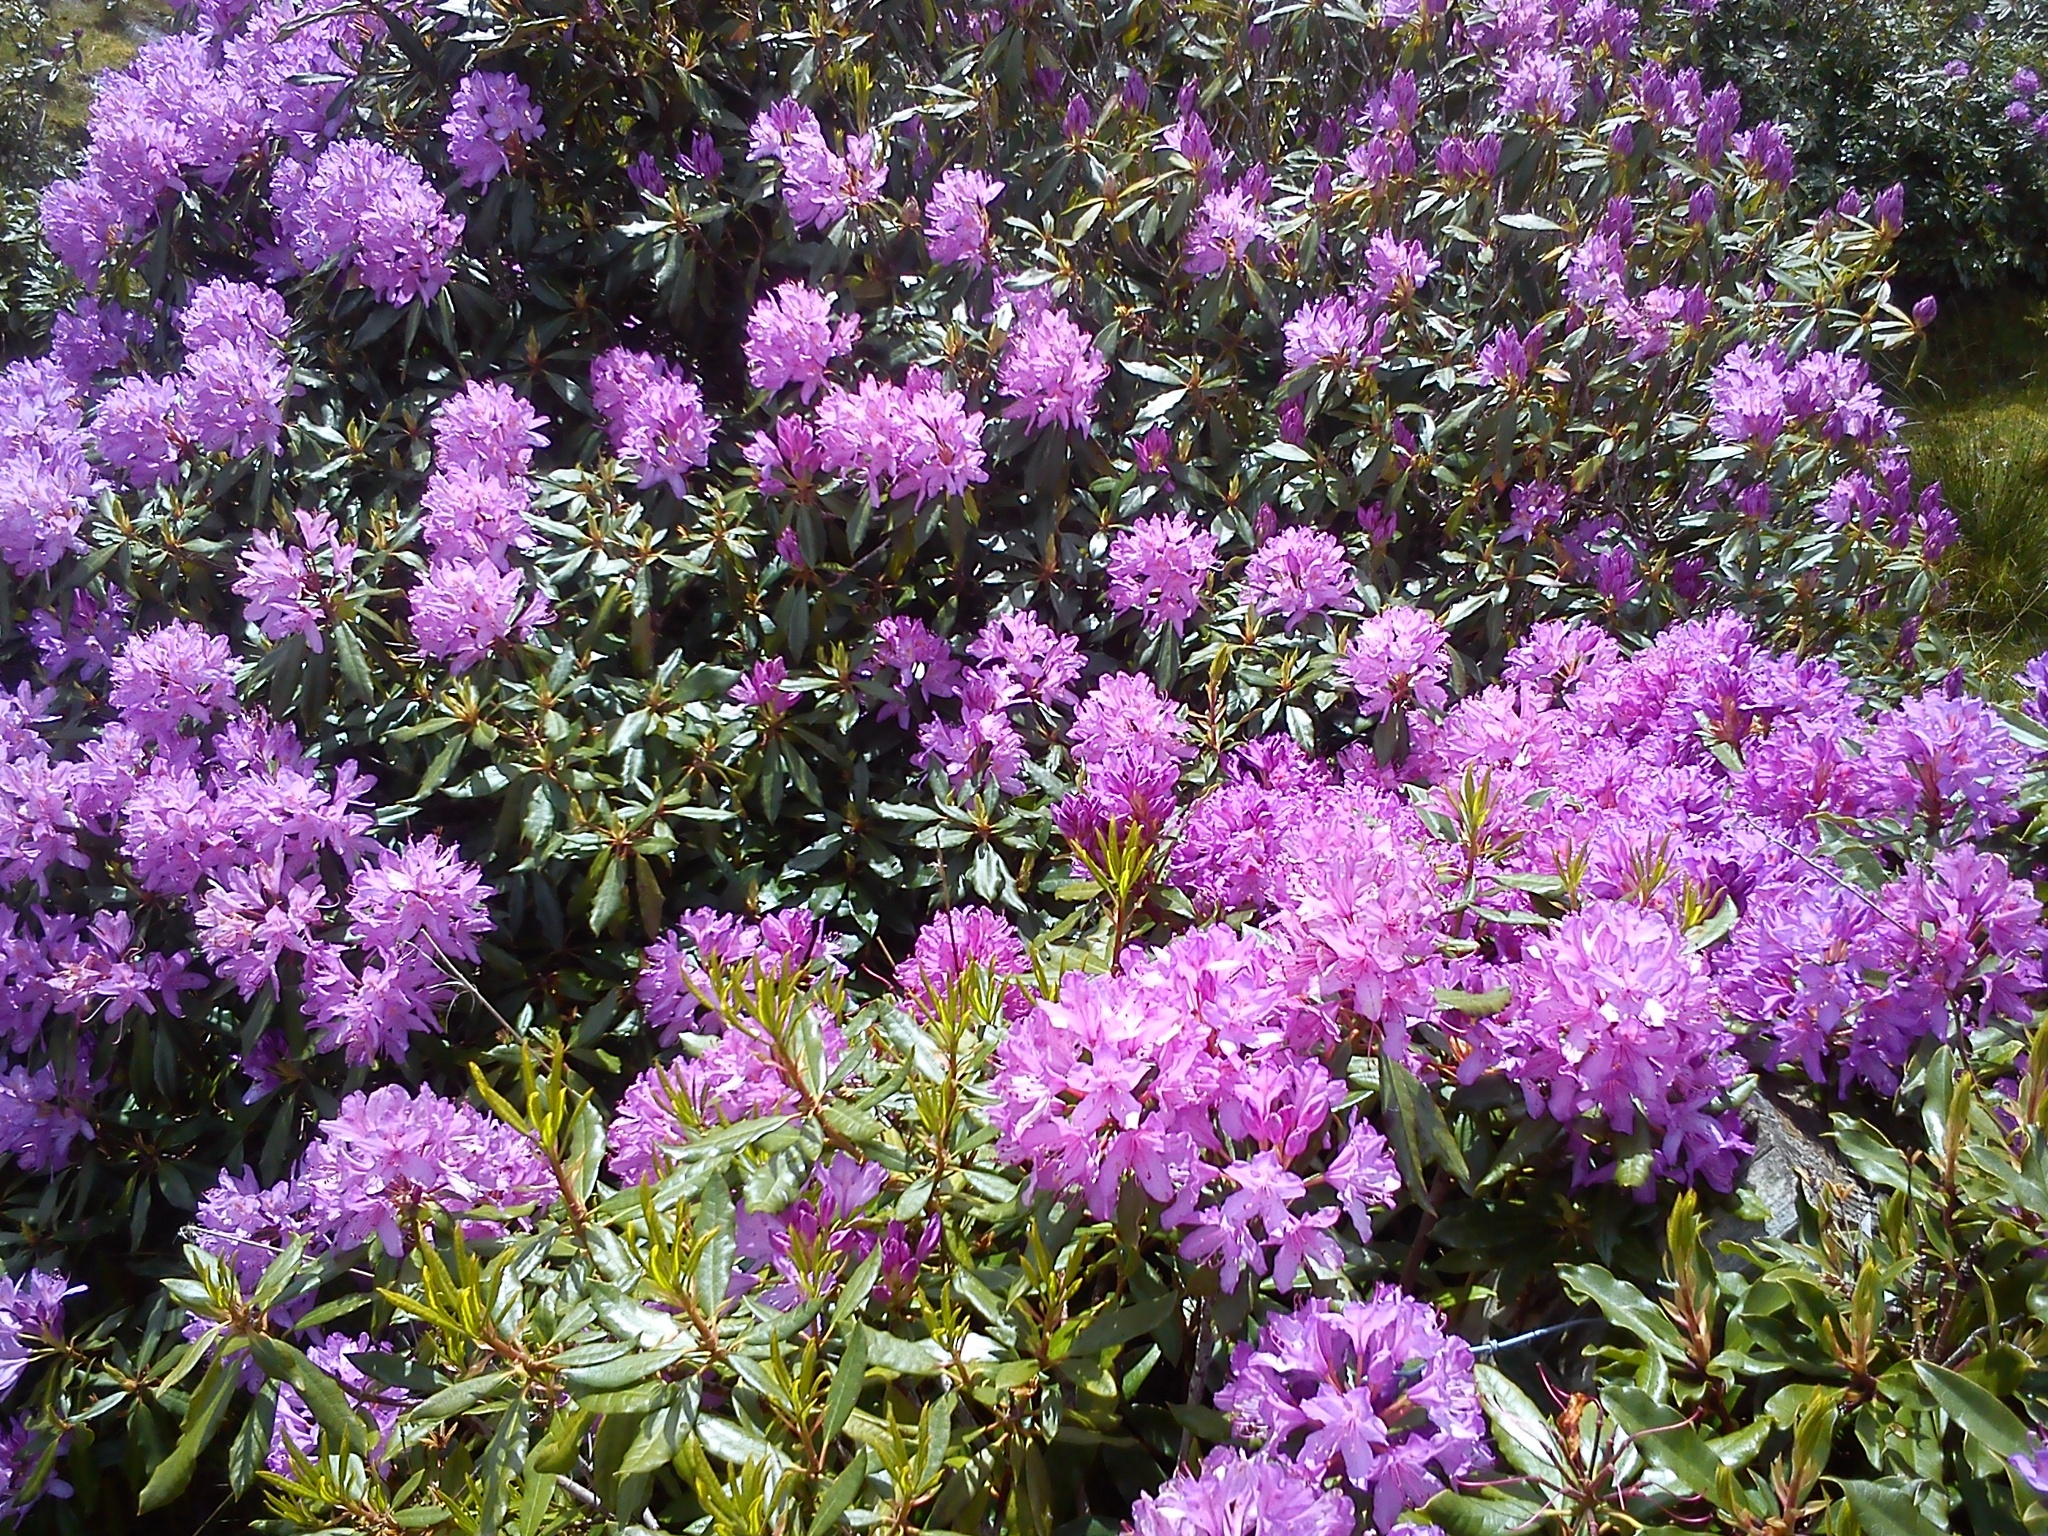 Rhododendron in bloom, Connemara, Ireland by Gunnerman85